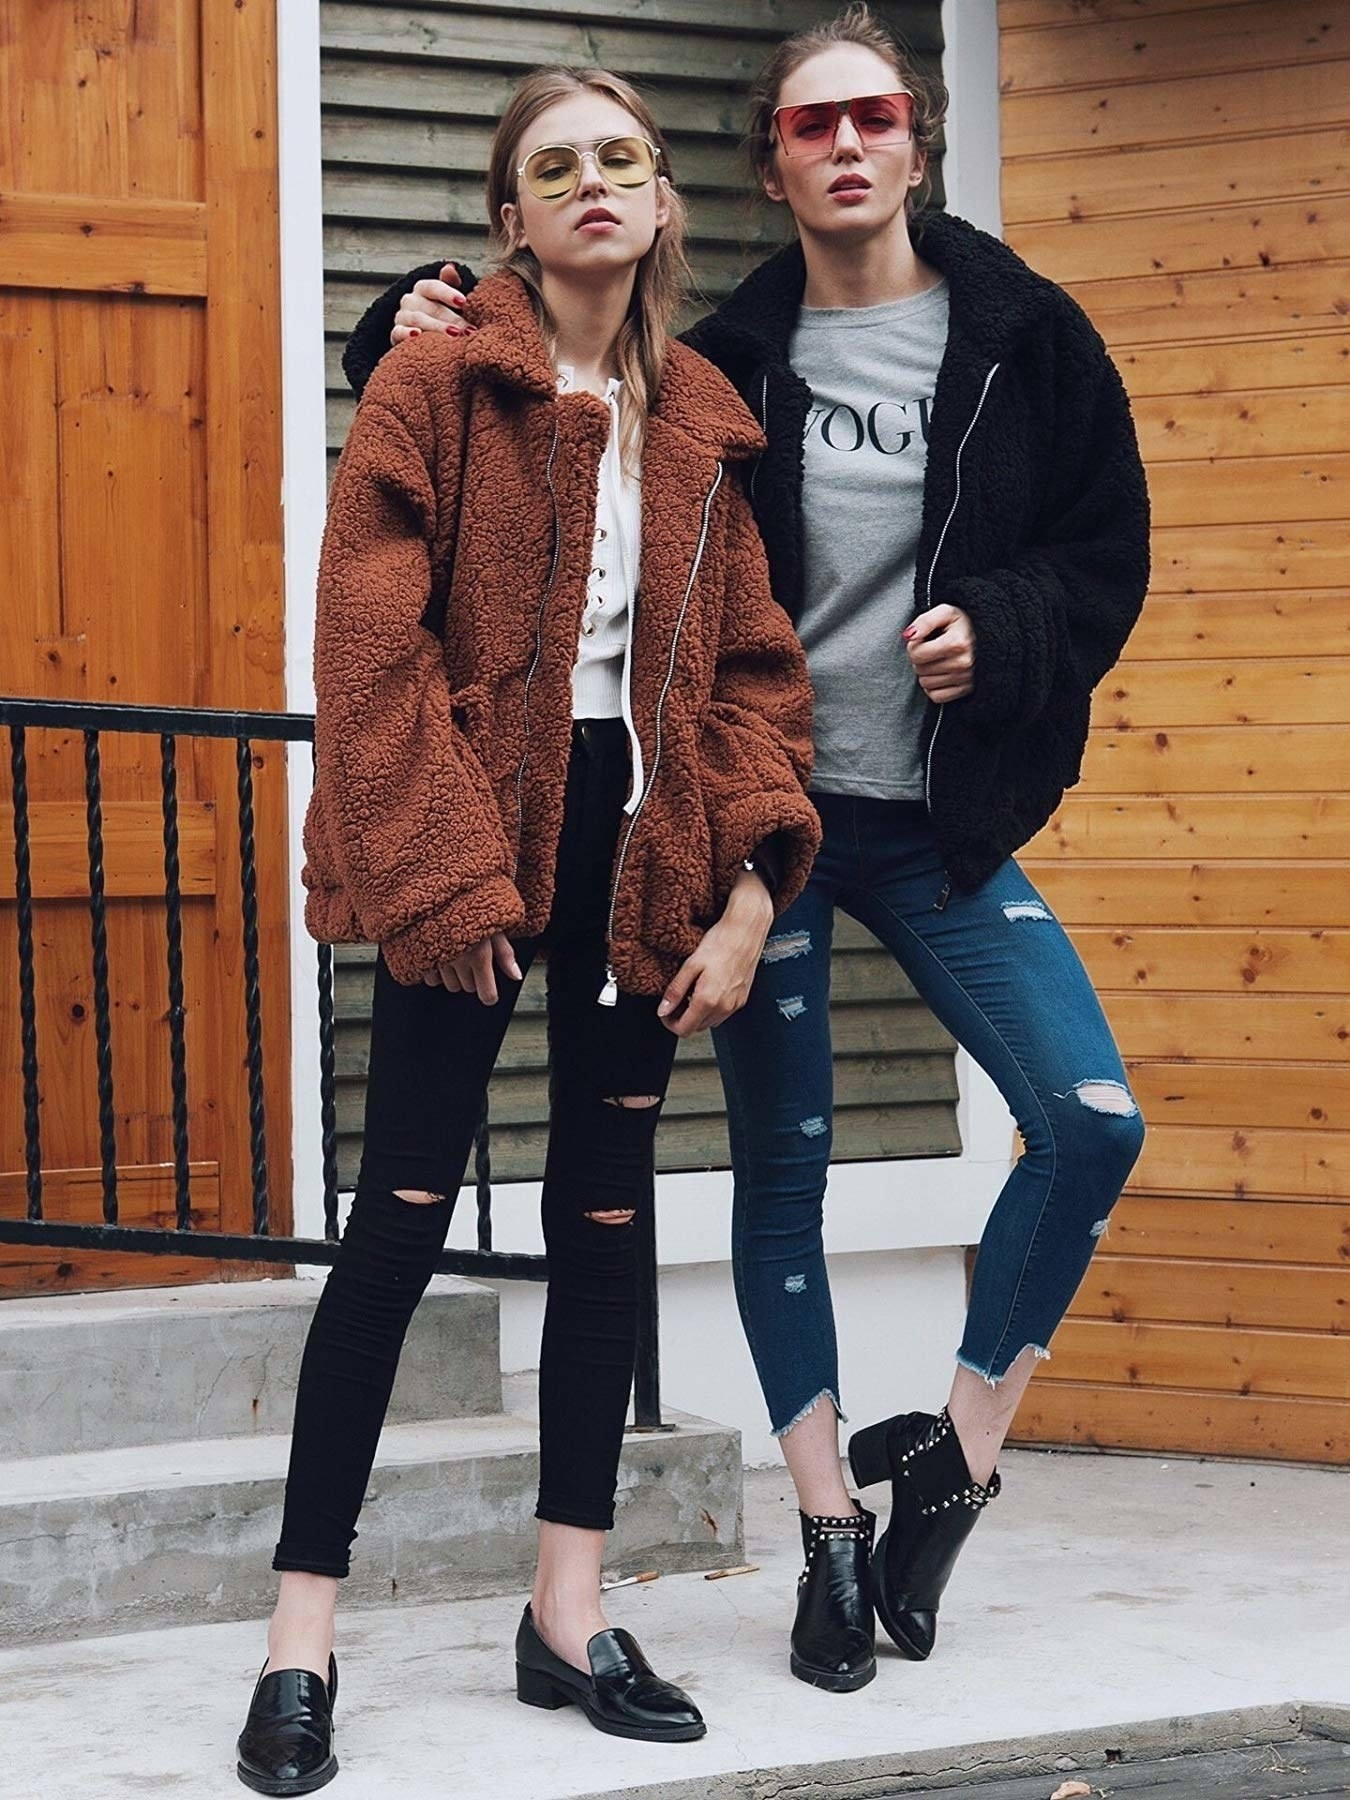 Two models wear the PRETTYGARDEN shaggy jacket; one in brown and the other in black